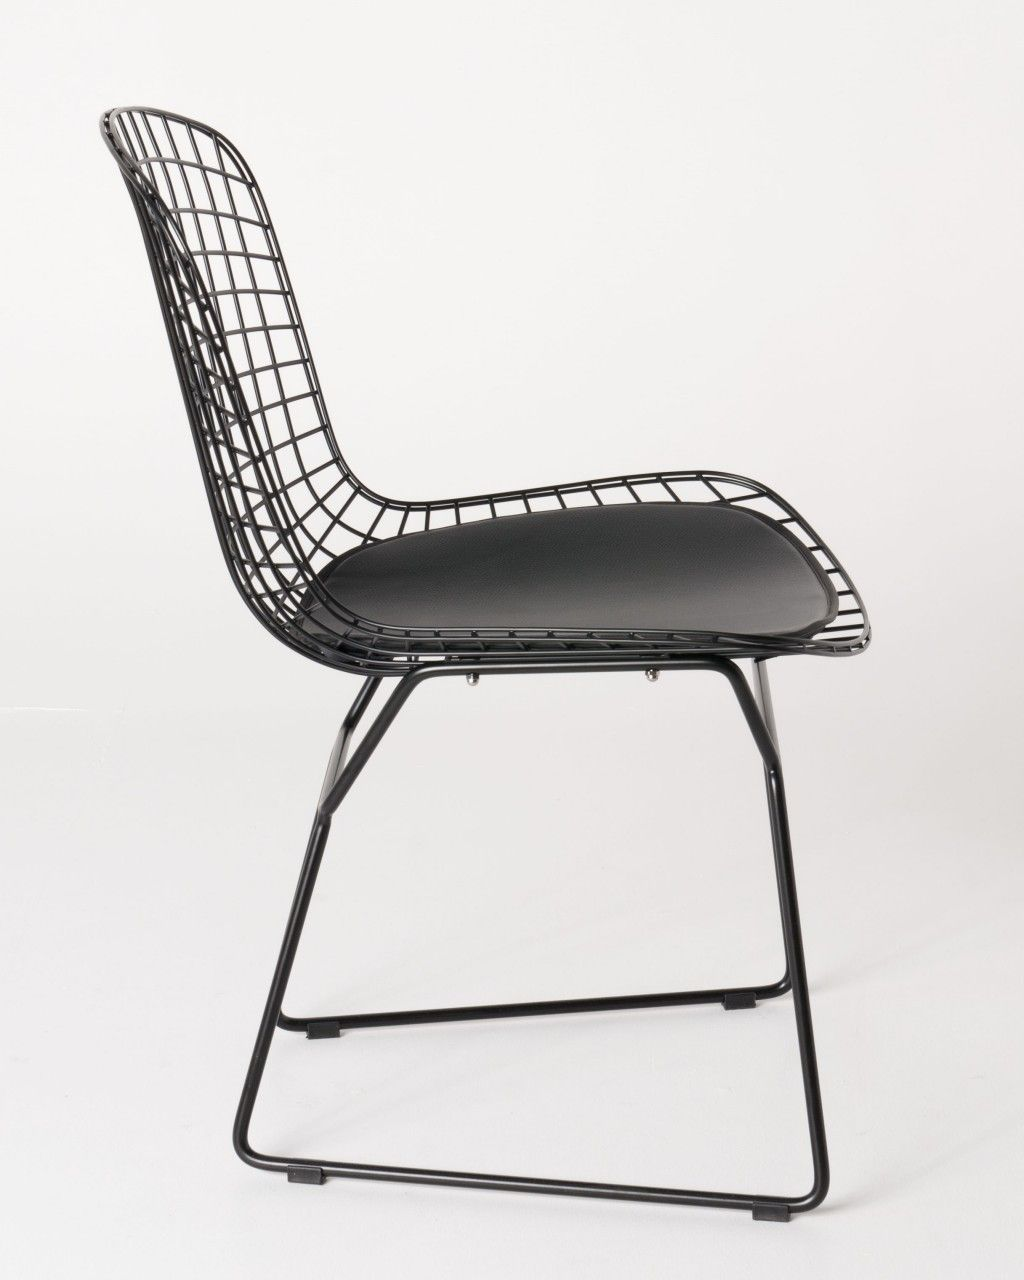 Replica Bird Chair By Harry Bertoia. Email Us For The Best Price Guaranteed!